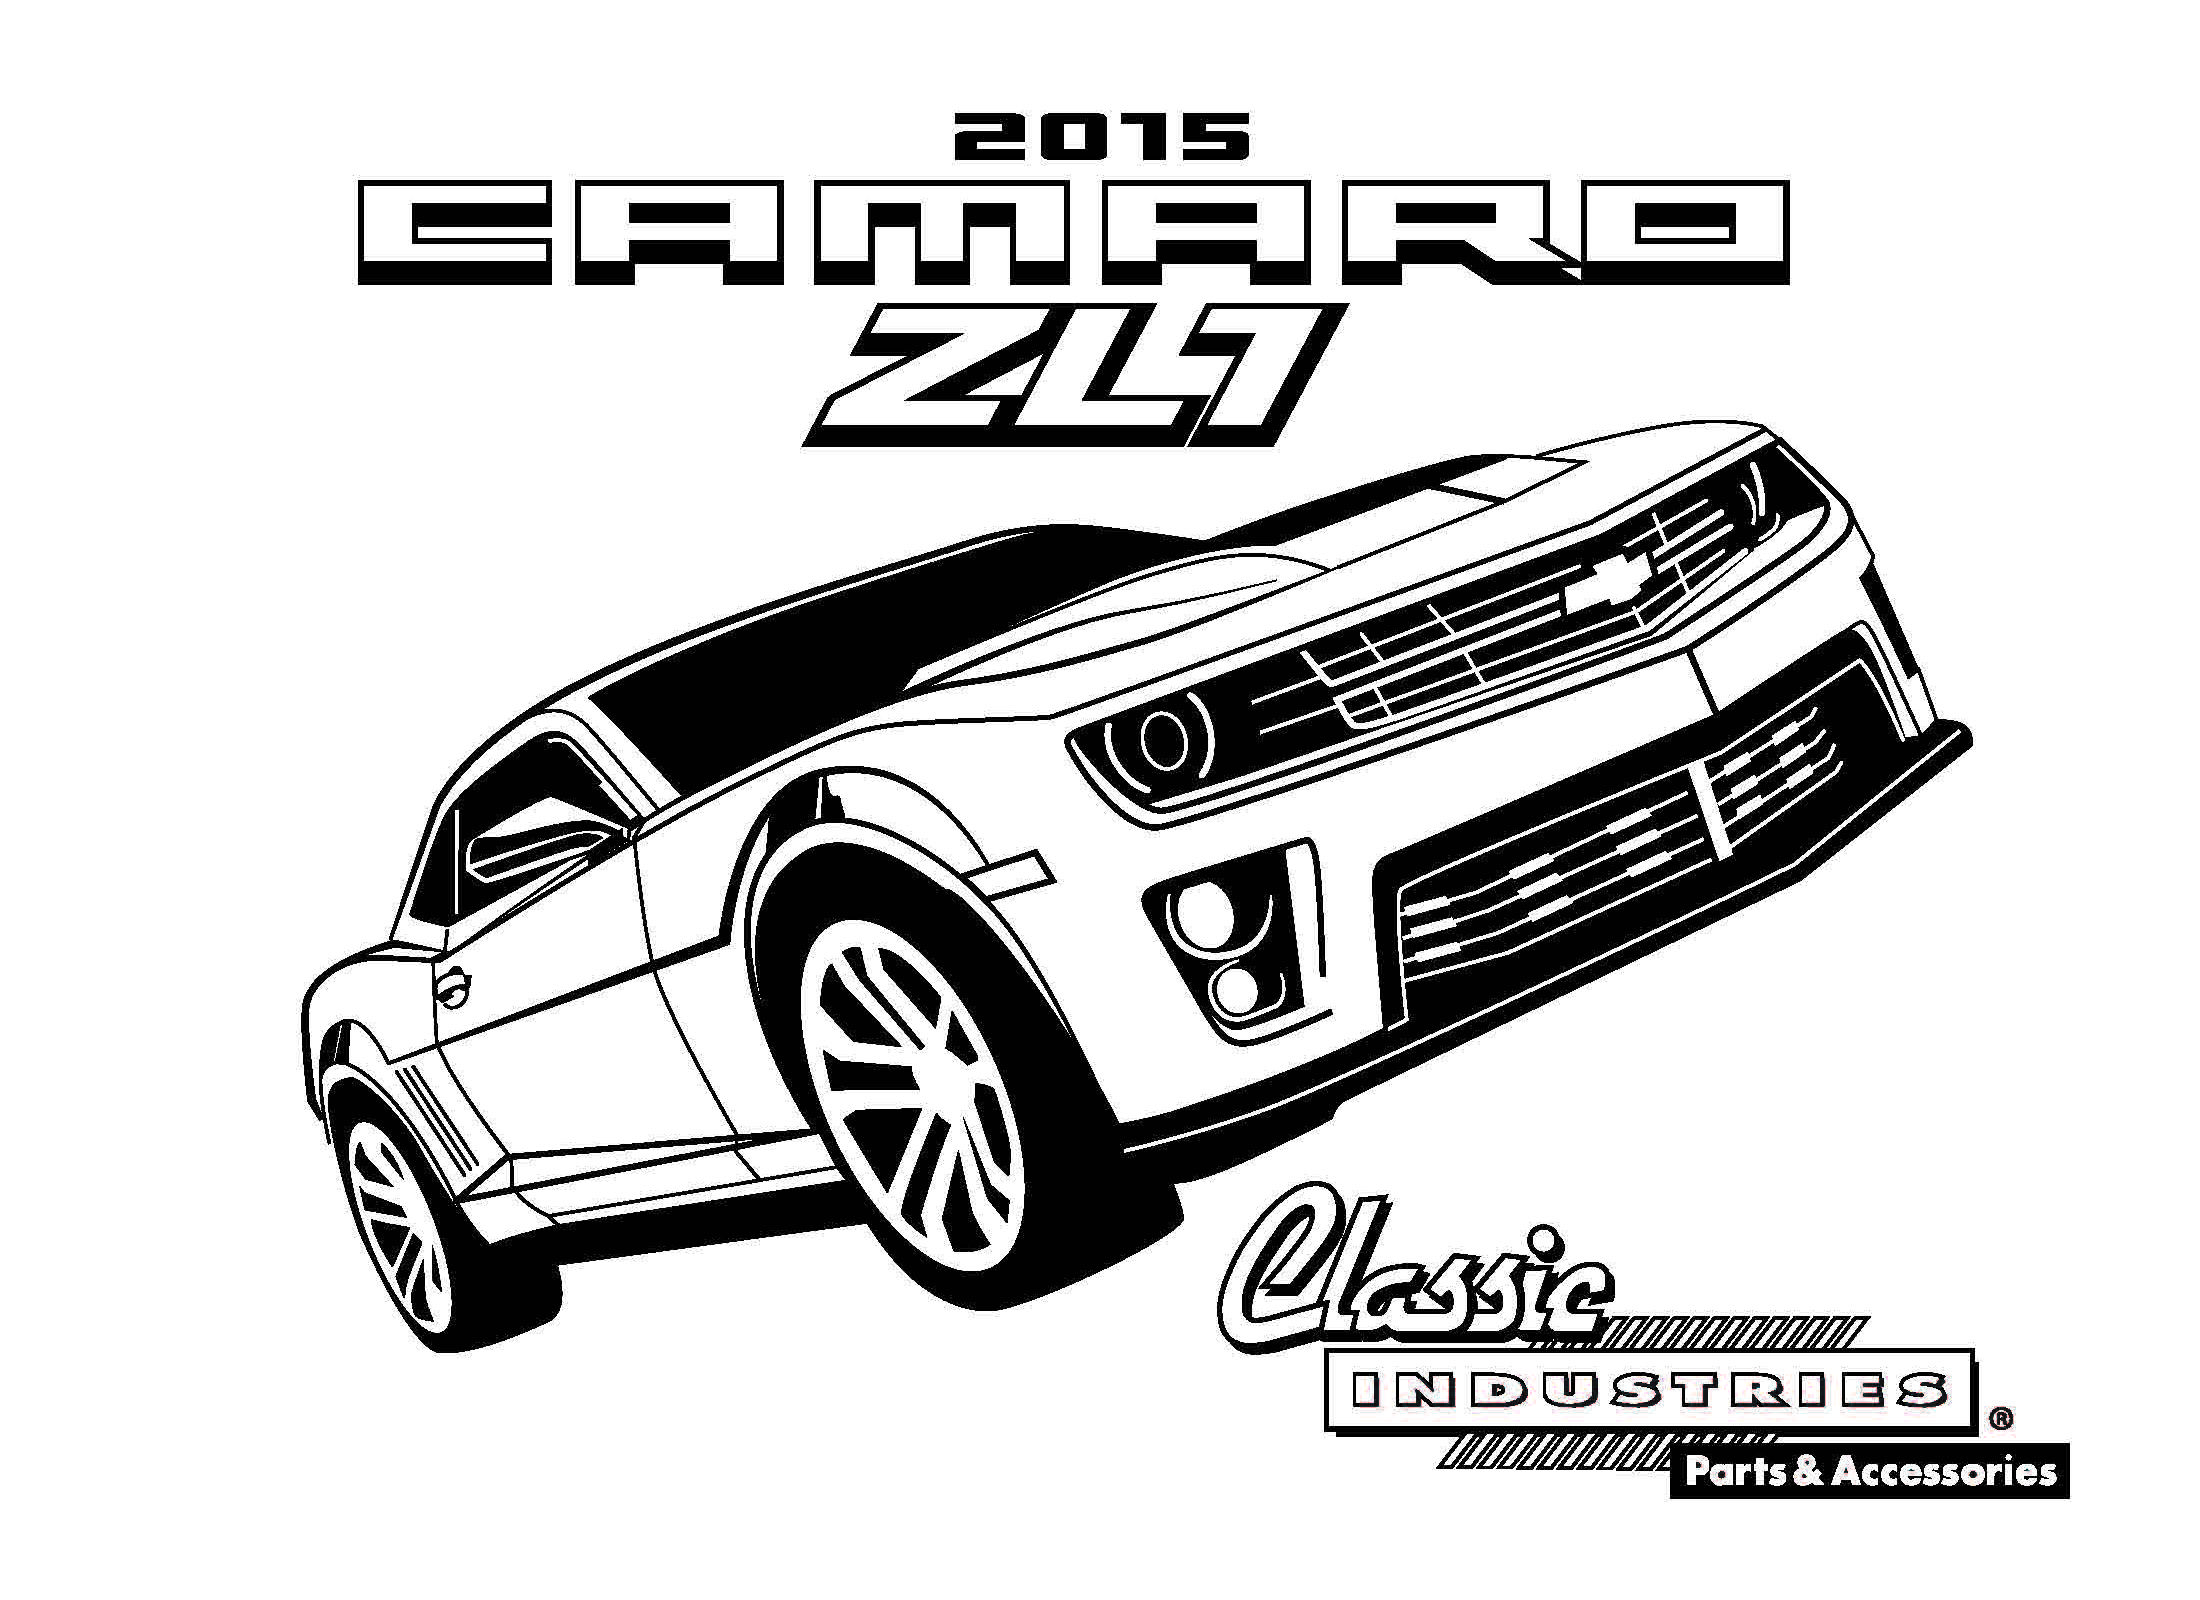 - Get Crafty With These Amazing Classic Car Coloring Pages